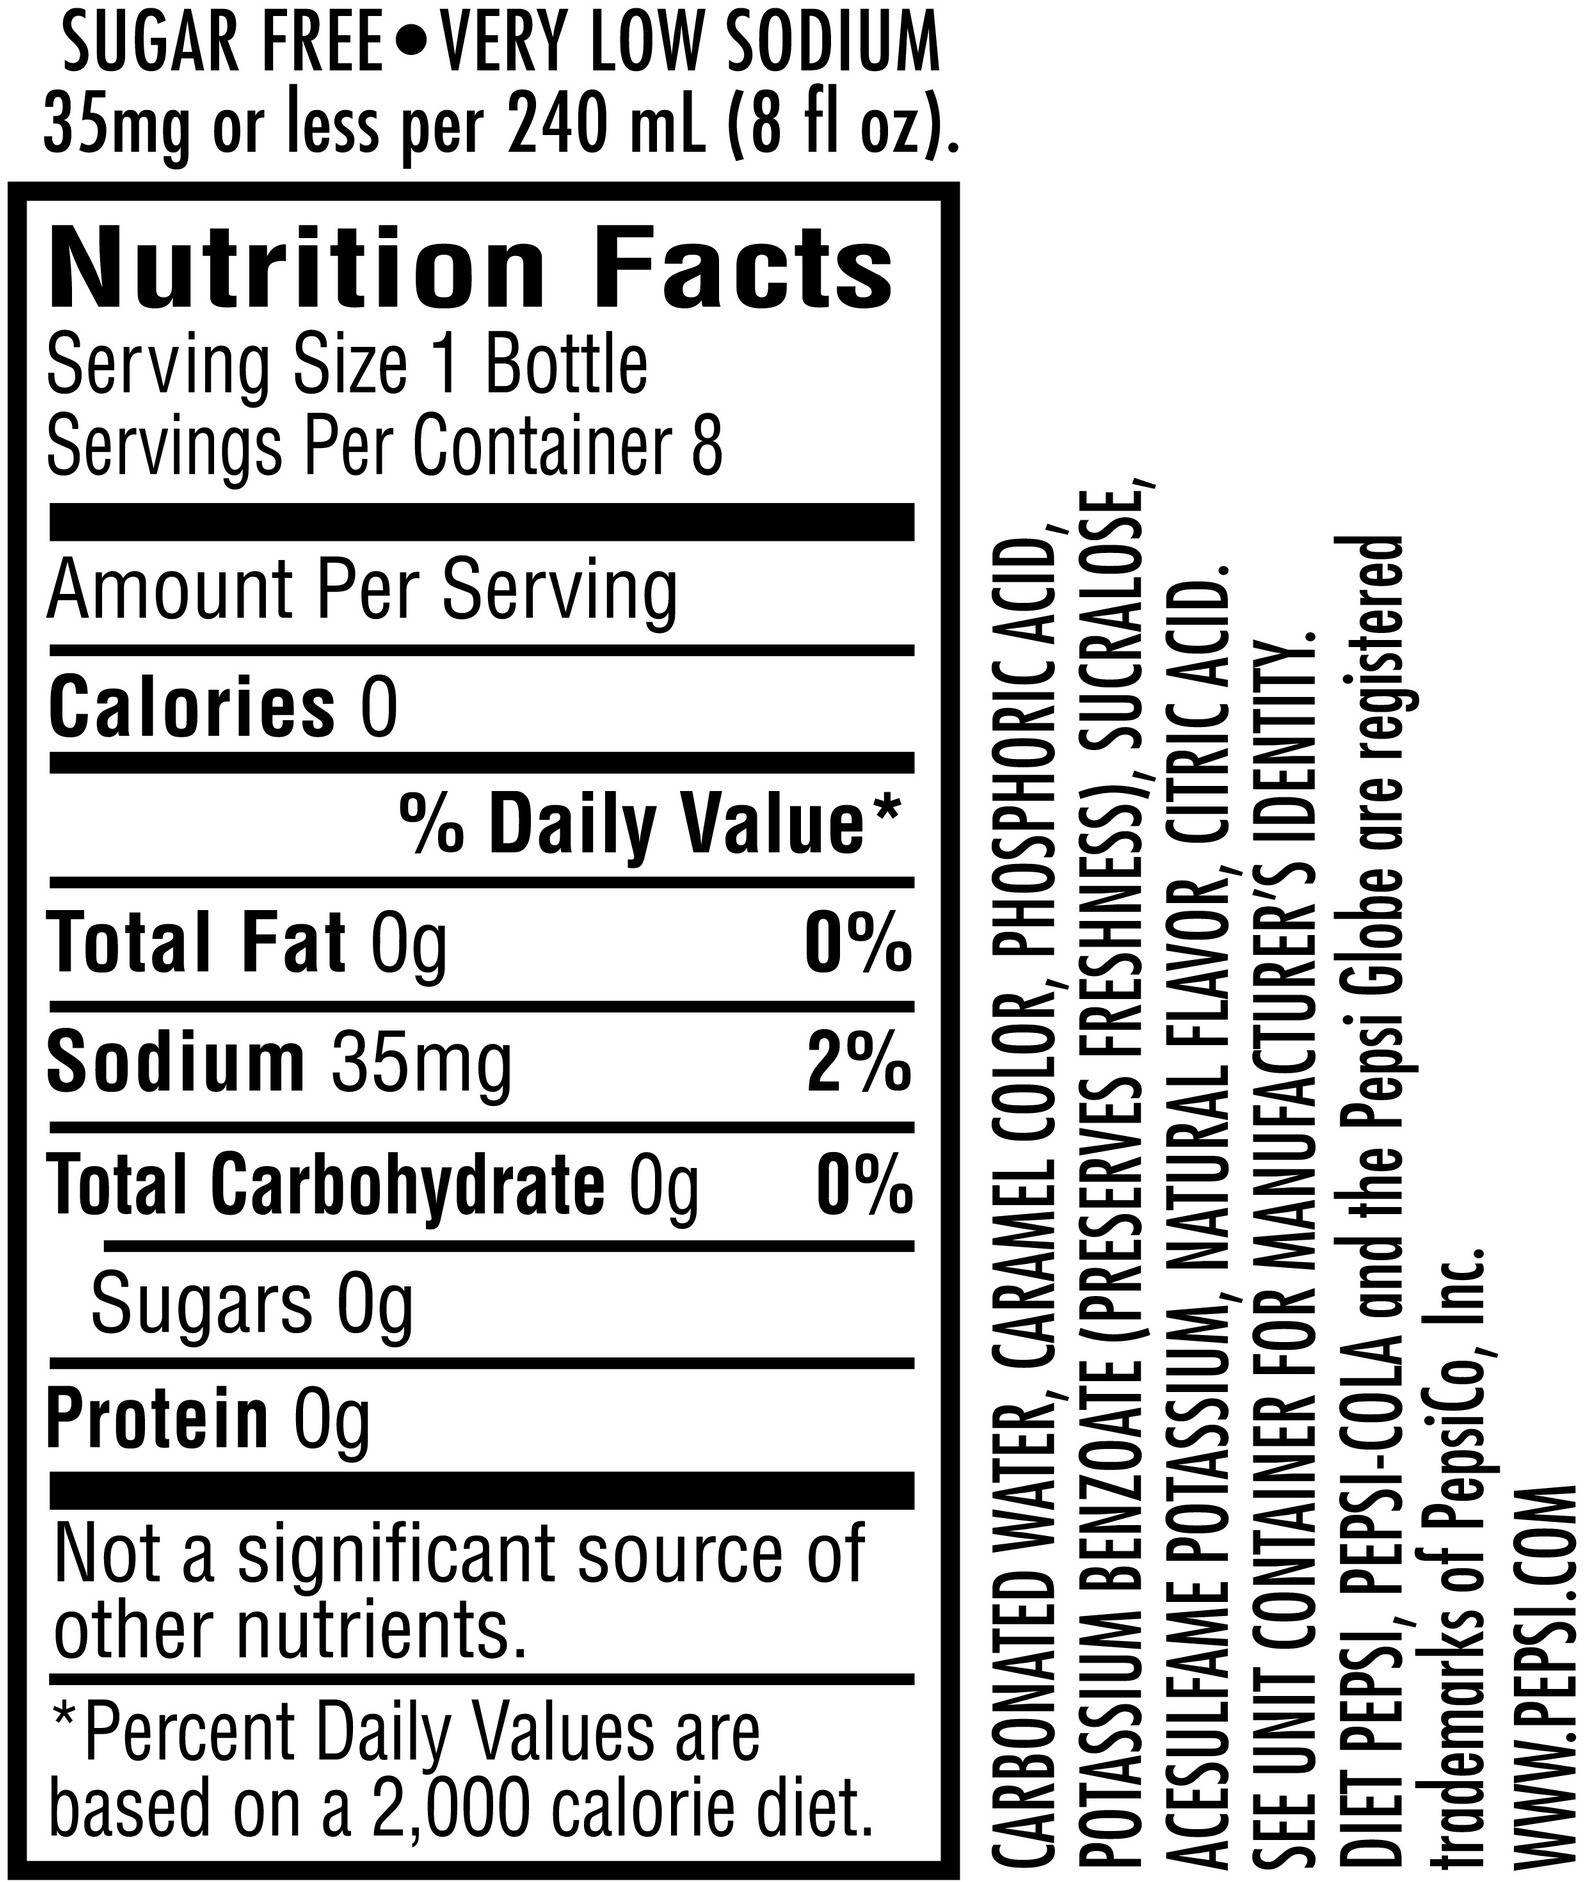 Image describing nutrition information for product Caffeine Free Diet Pepsi